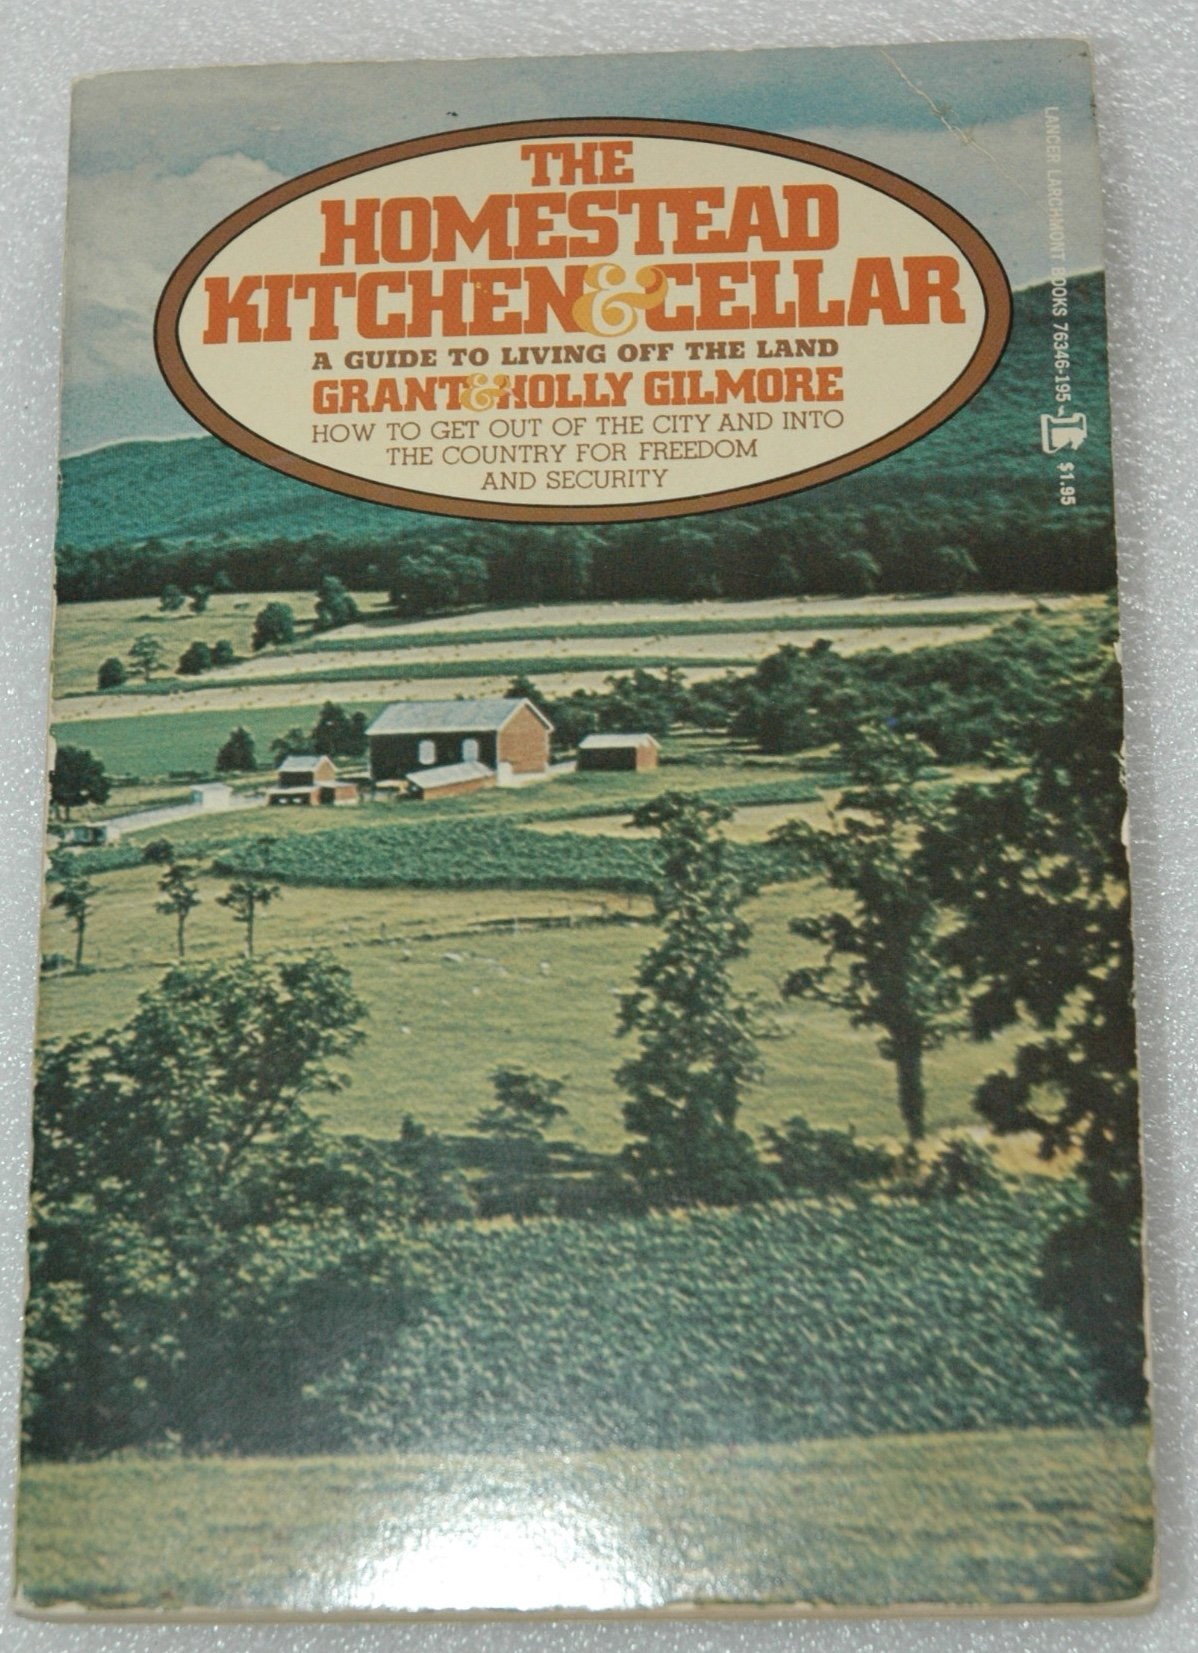 The Homestead Kitchen U0026 Cellar: A Guide To Living Off The Land. How To Get  Out Of The City And Into The Country For Freedom And Security: Grant U0026  Holly ...